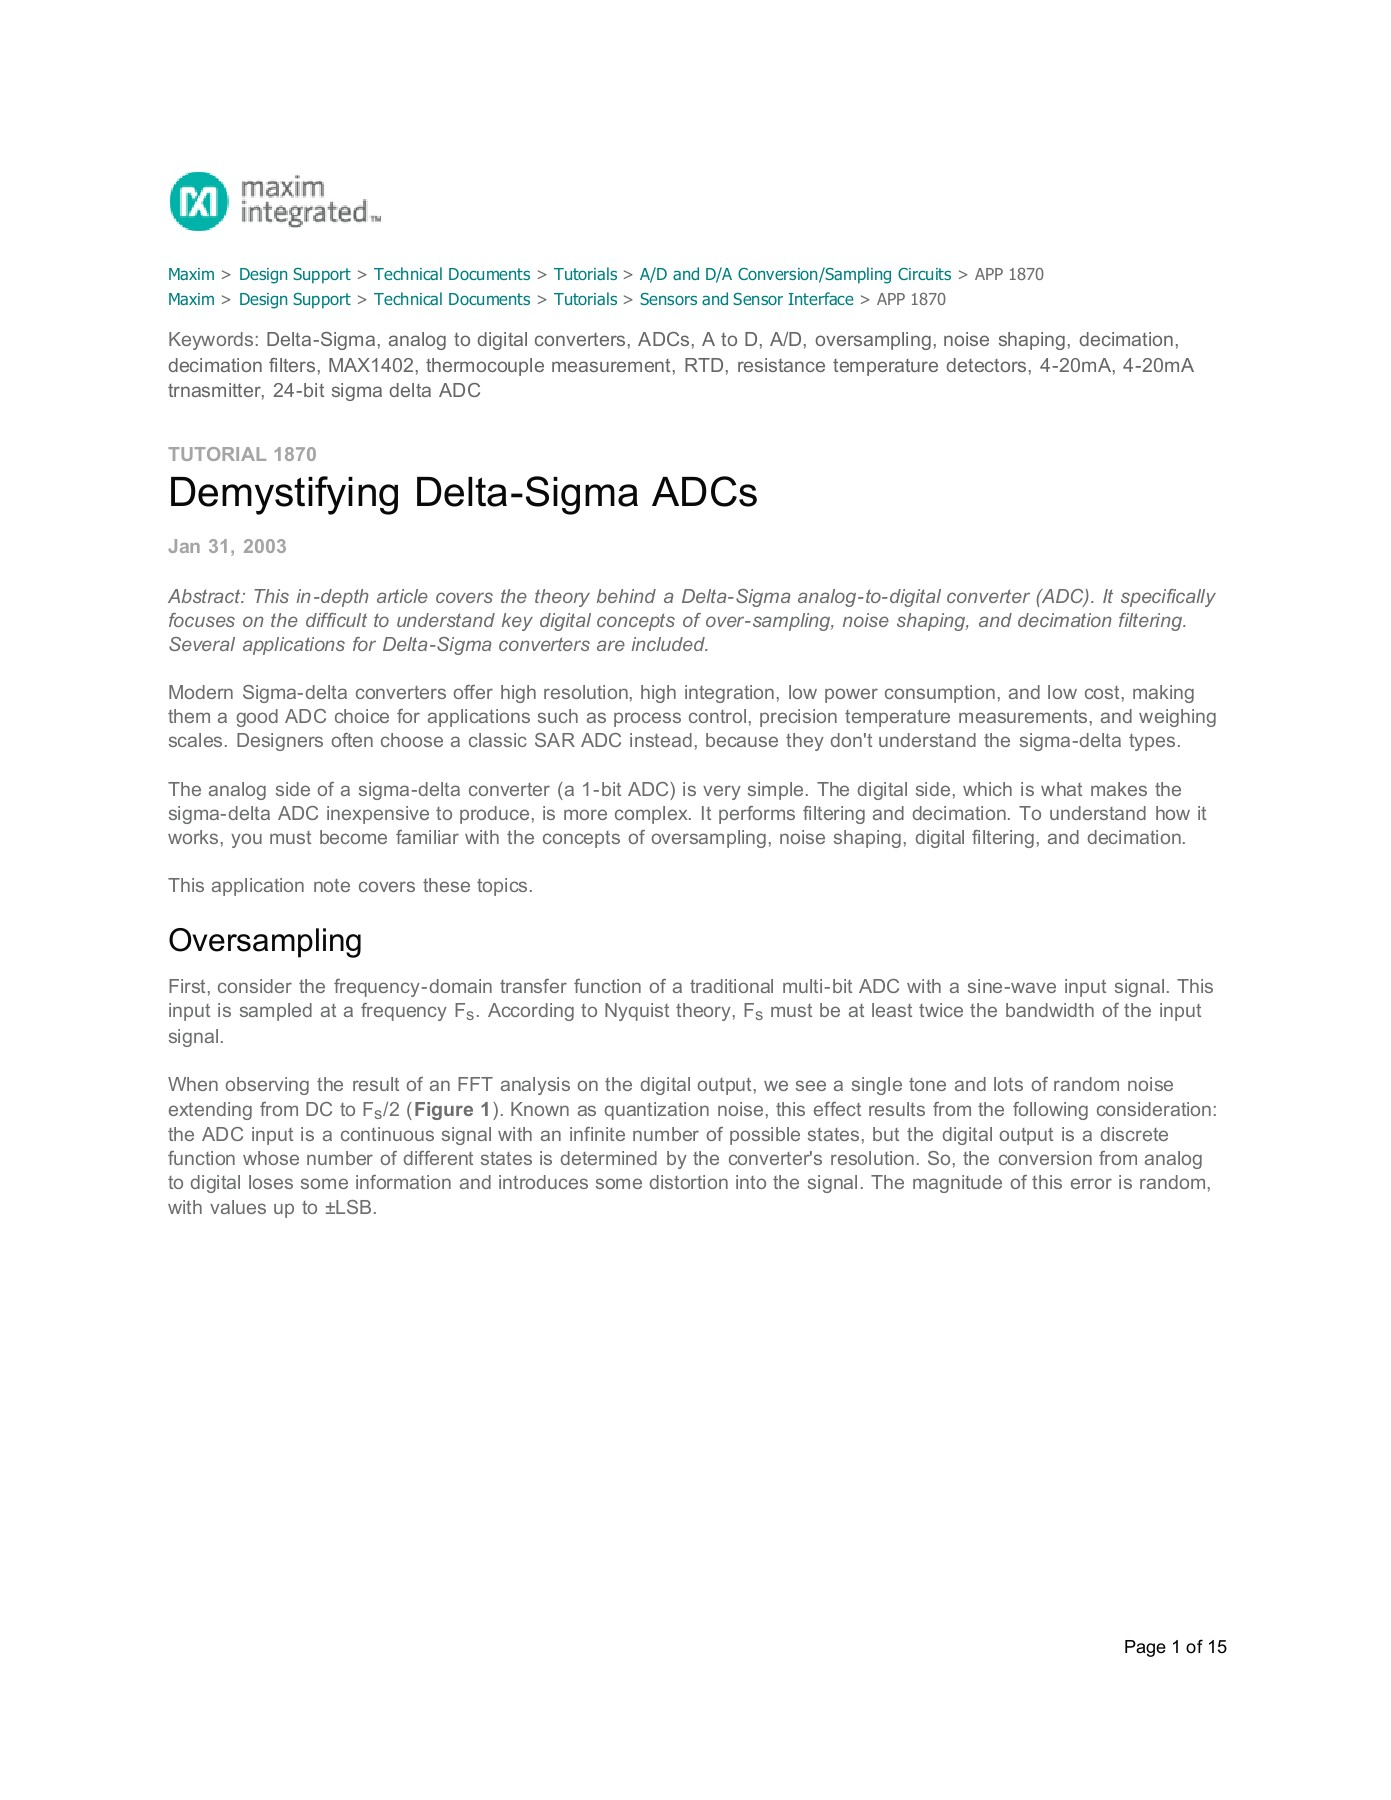 TUTORIAL 1870 Demystifying Delta-Sigma ADCs Pages 1 - 15